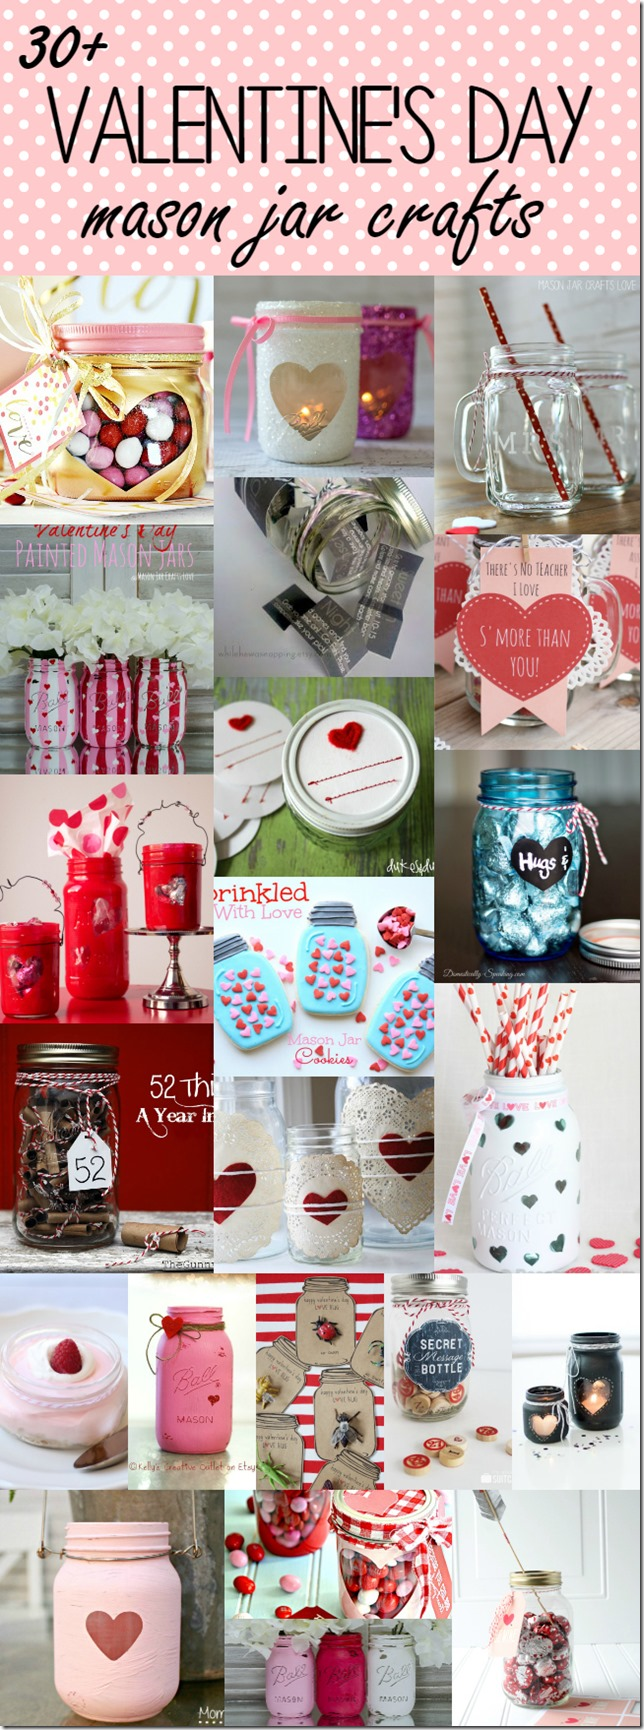 valentine-day-crafts-ideas-mason-jars